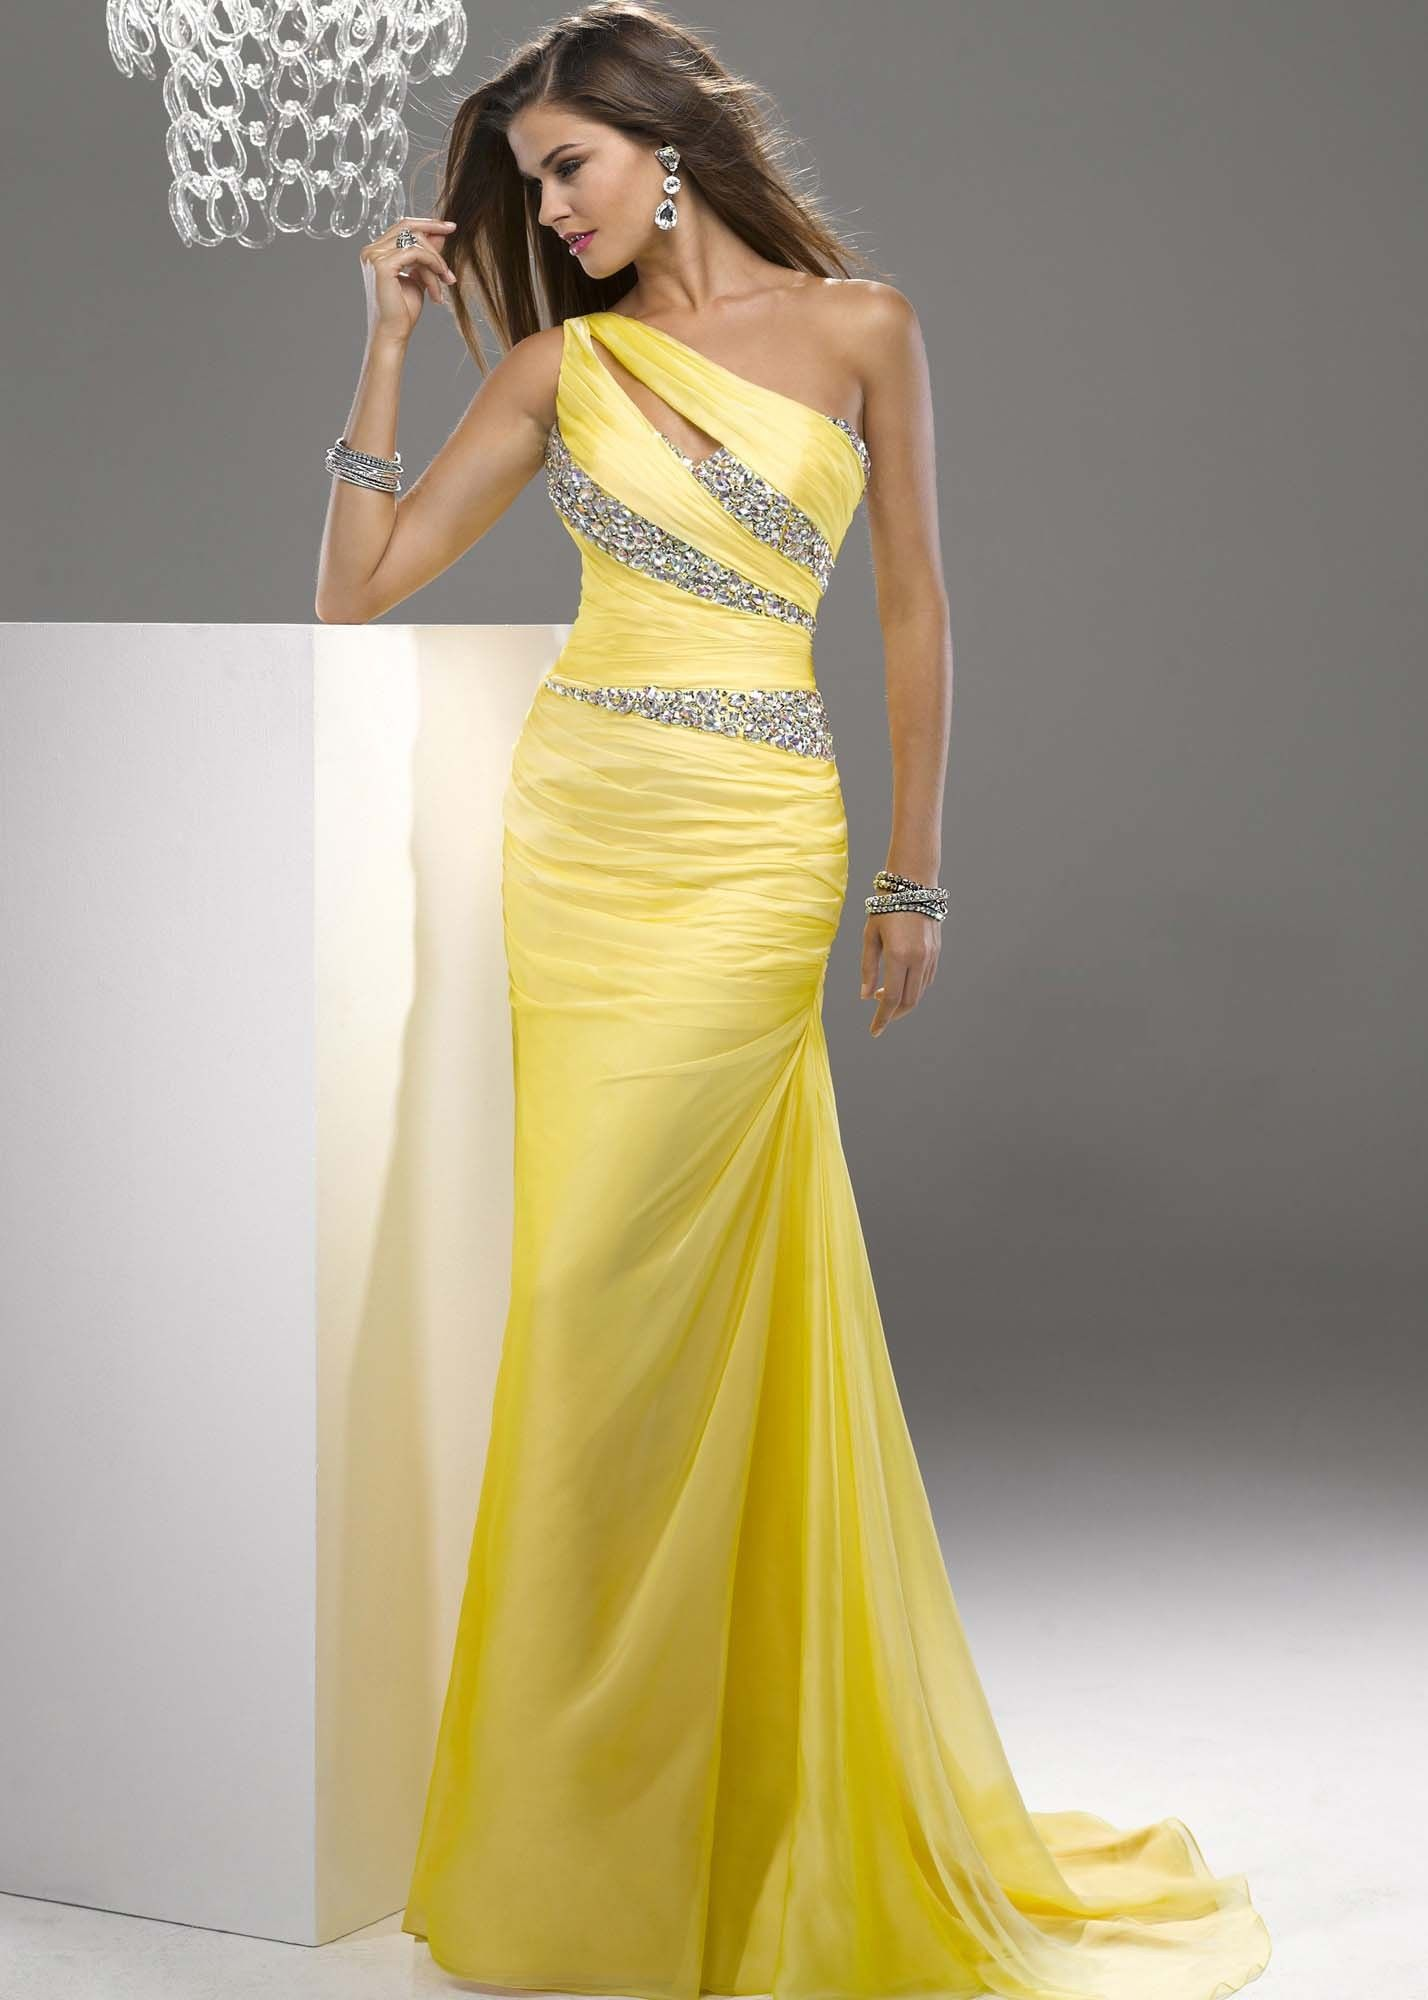 One Shoulder Formal Dresses | dales.tk